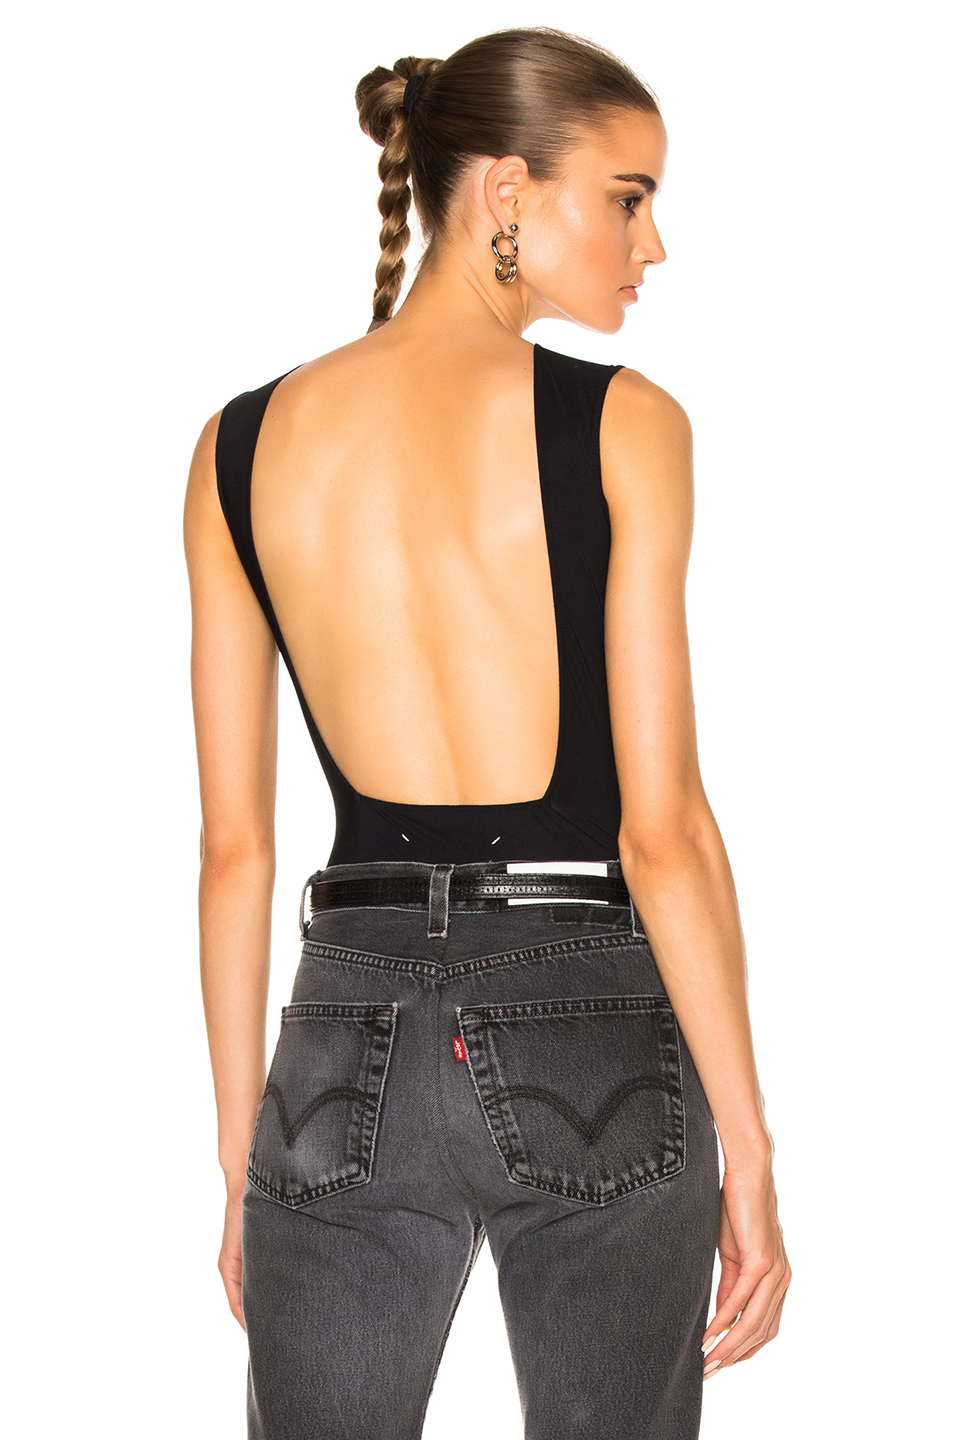 Maison Margiela Technical Stretch Jersey Backless Bodysuit in Black